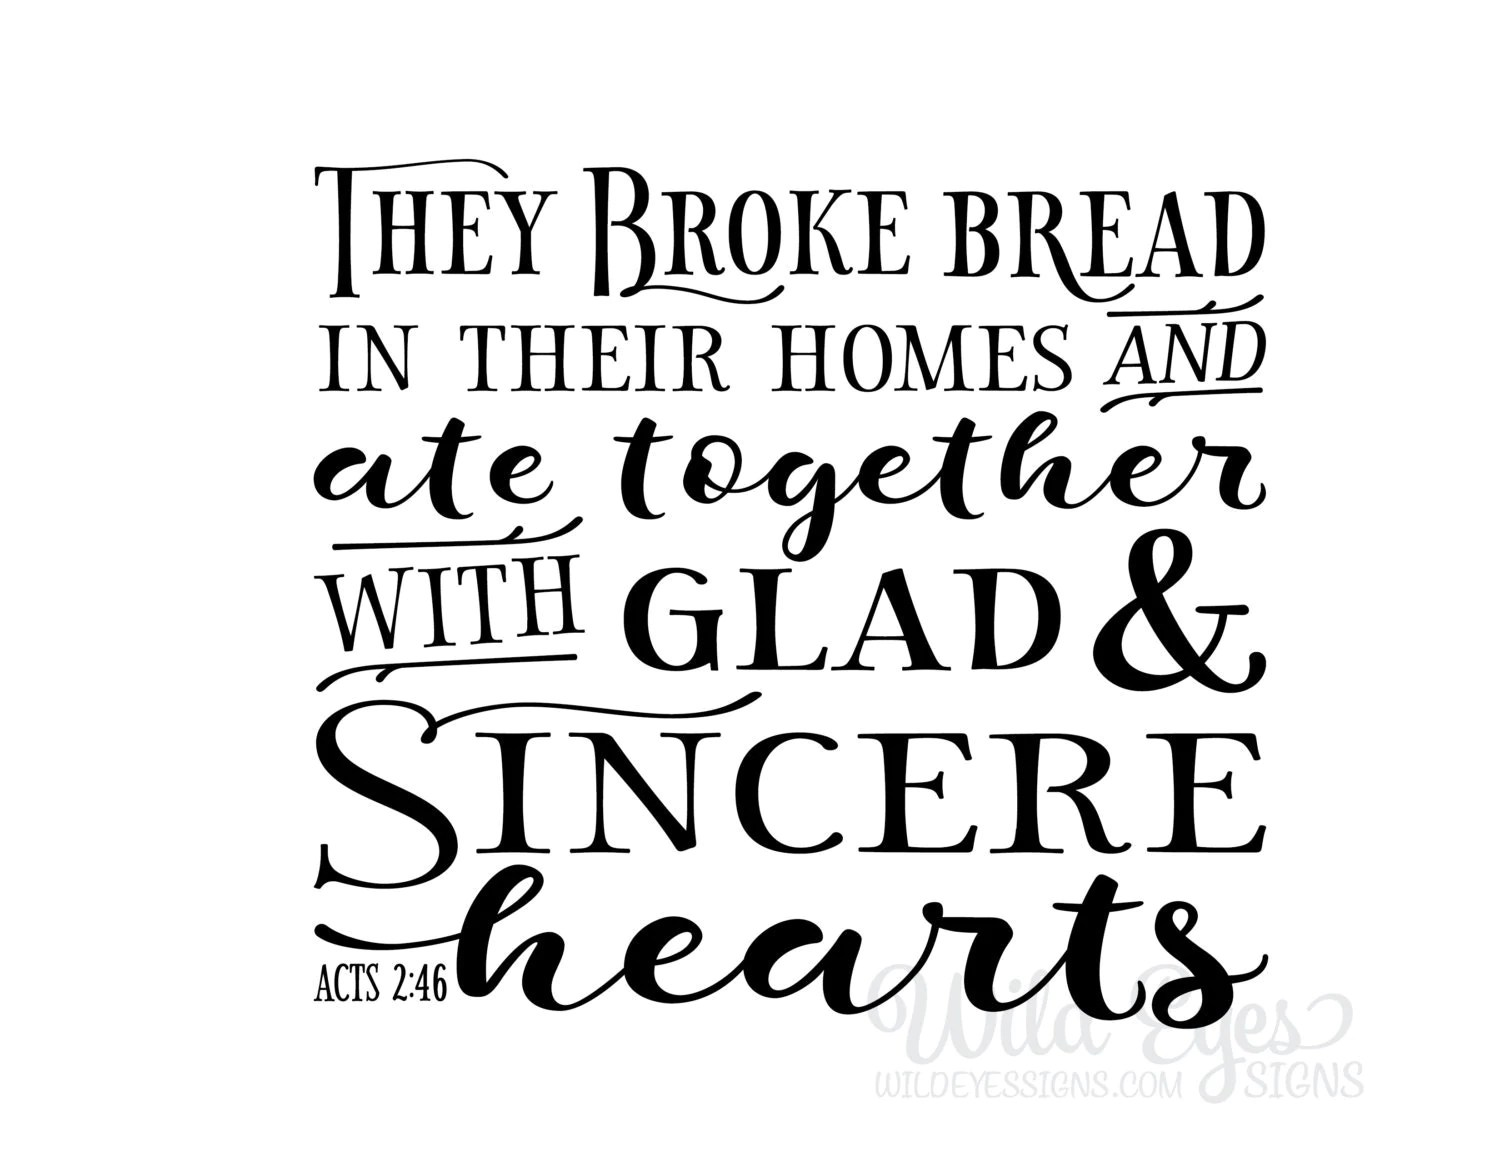 Acts 2 46 They Broke Bread In Their Homes And Ate Together